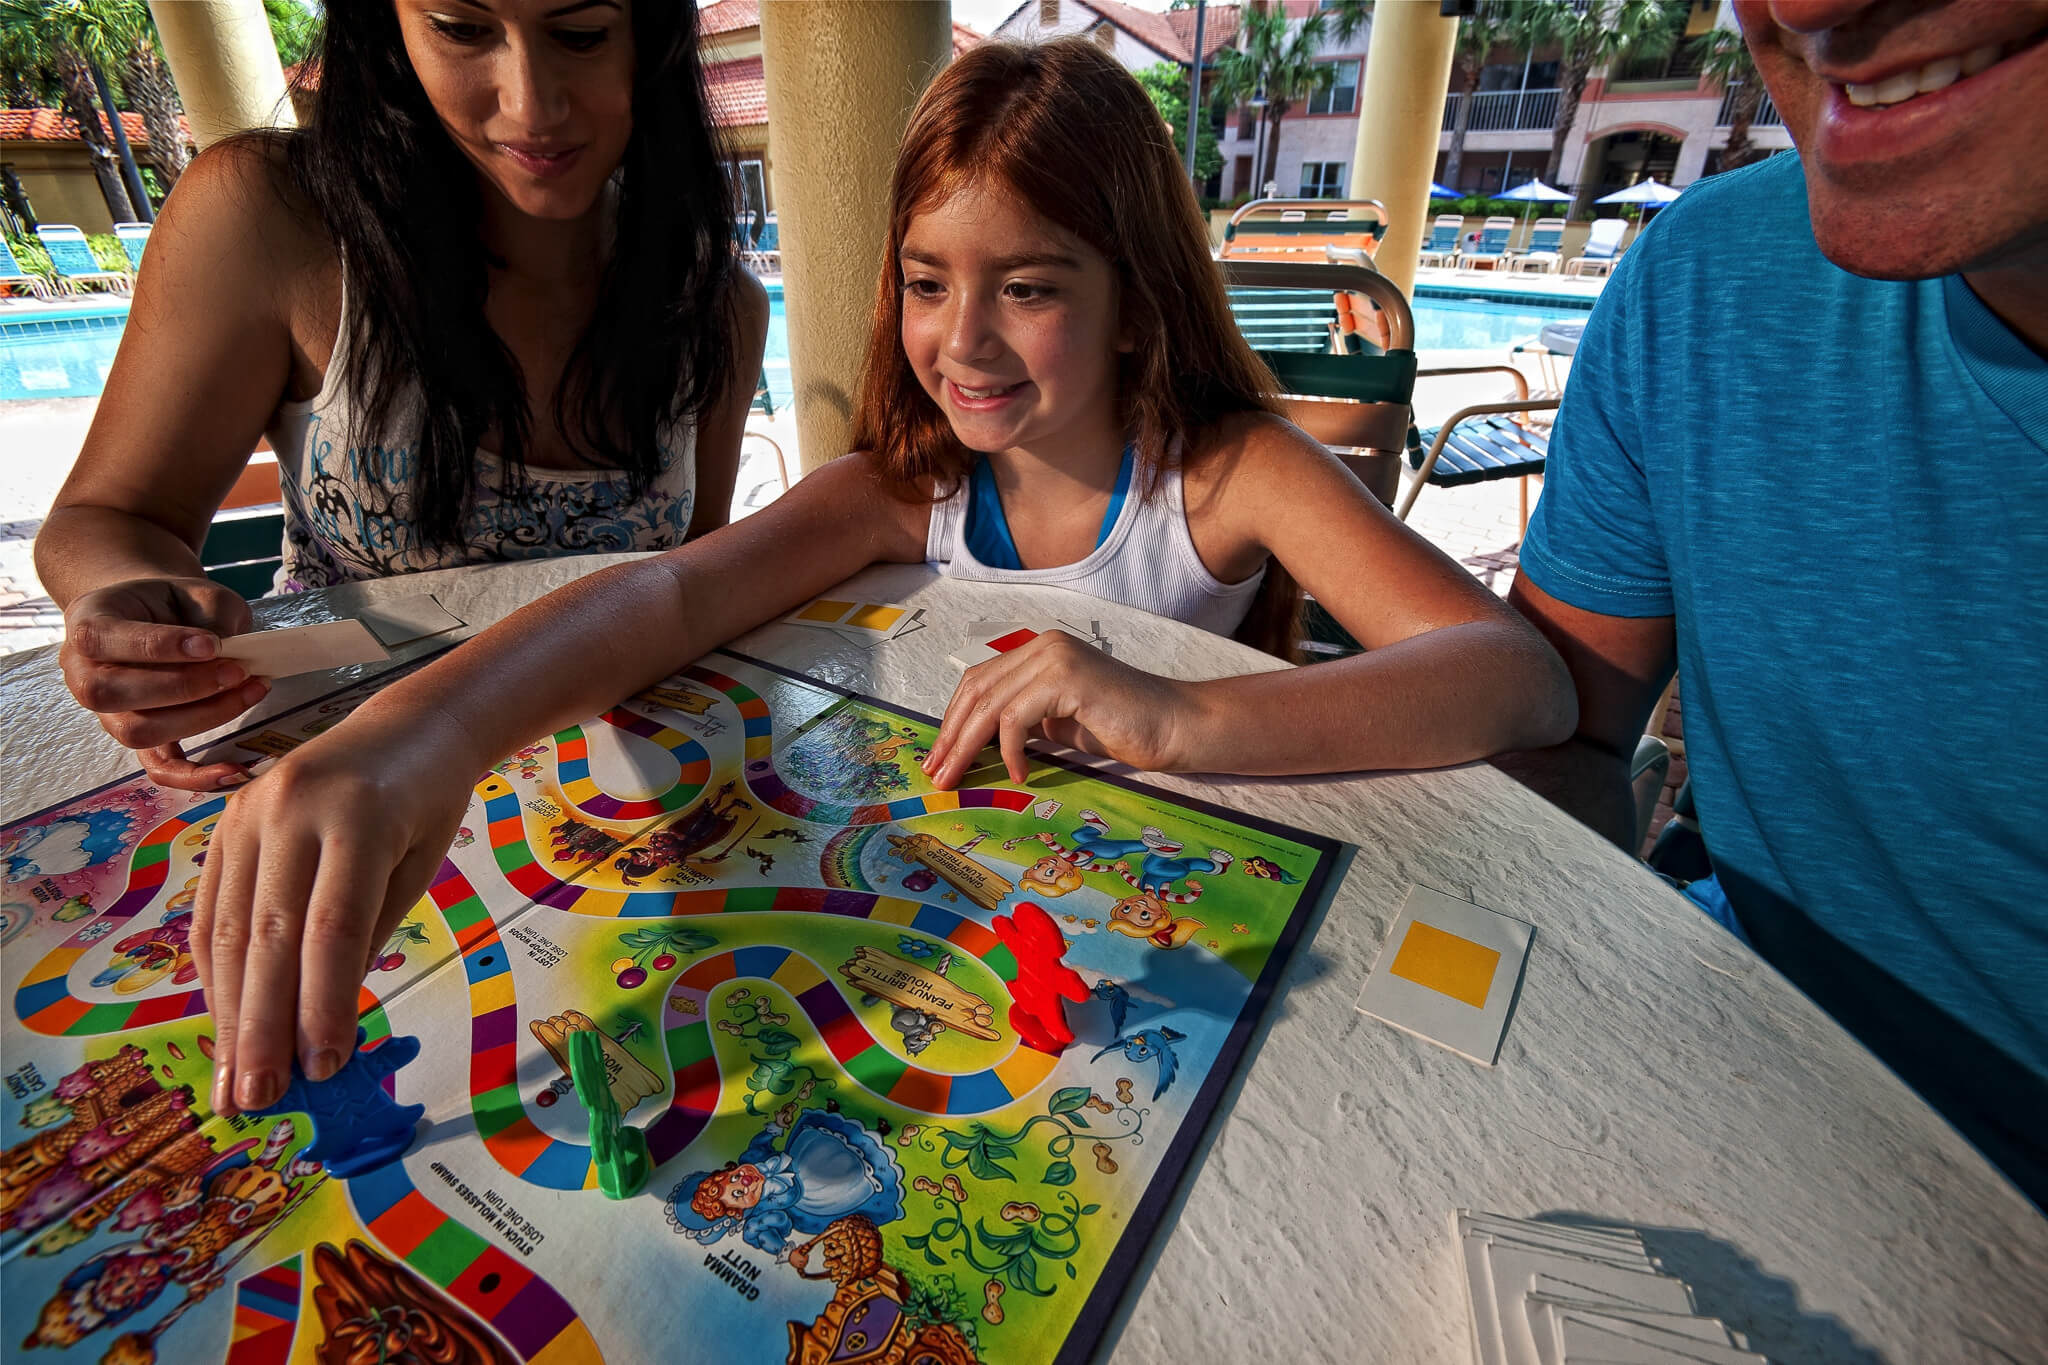 Mother and daughter playing board game on pool deck | Westgate Blue Tree Resort